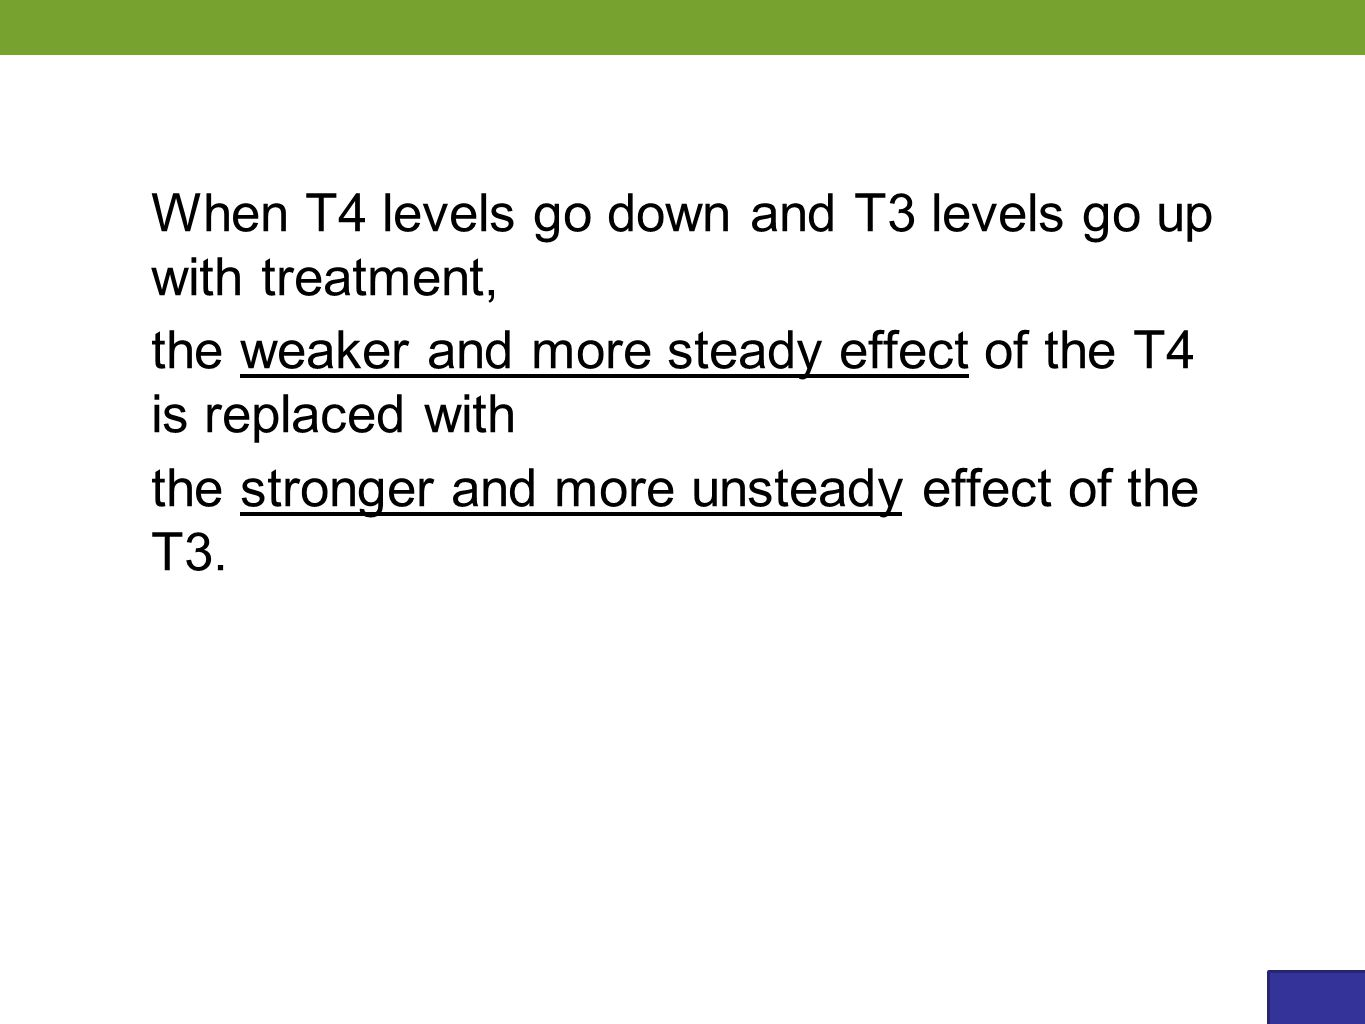 When T4 levels go down and T3 levels go up with treatment, the weaker and more steady effect of the T4 is replaced with the stronger and more unsteady